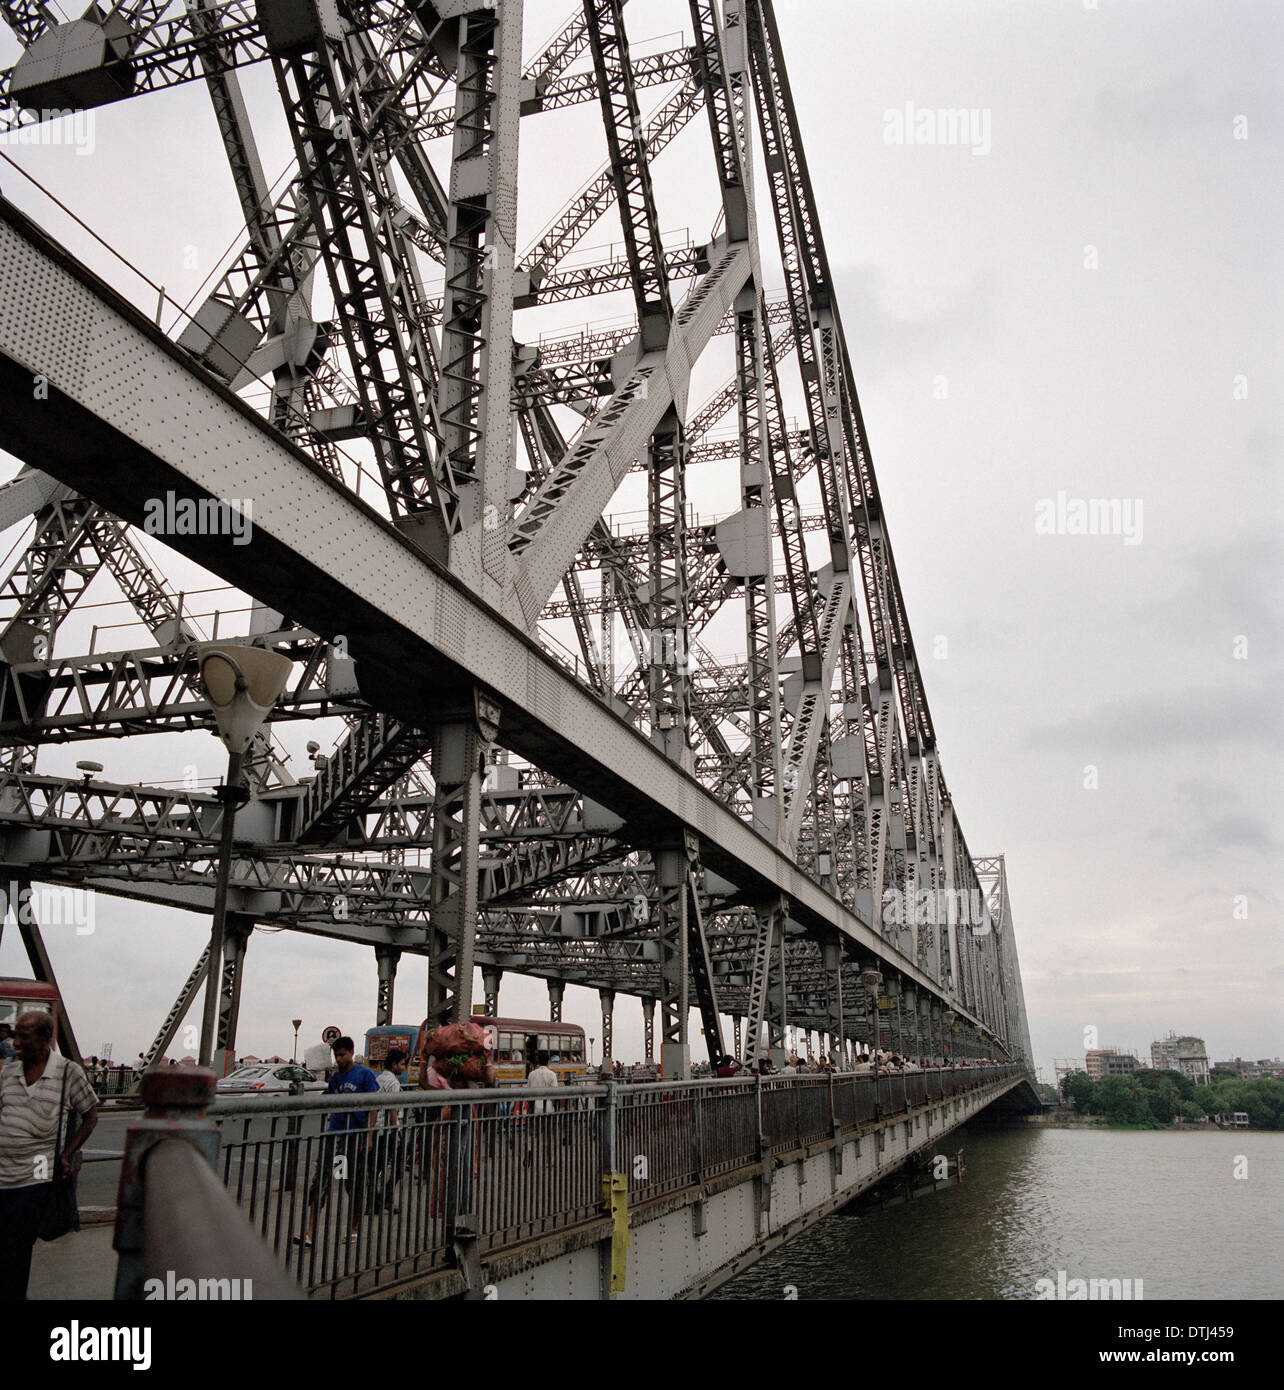 Howrah Bridge in Kolkata Calcutta in West Bengal in India in South Asia. Architecture Building Bridges Design Strength Structures Abstract Art Travel - Stock Image